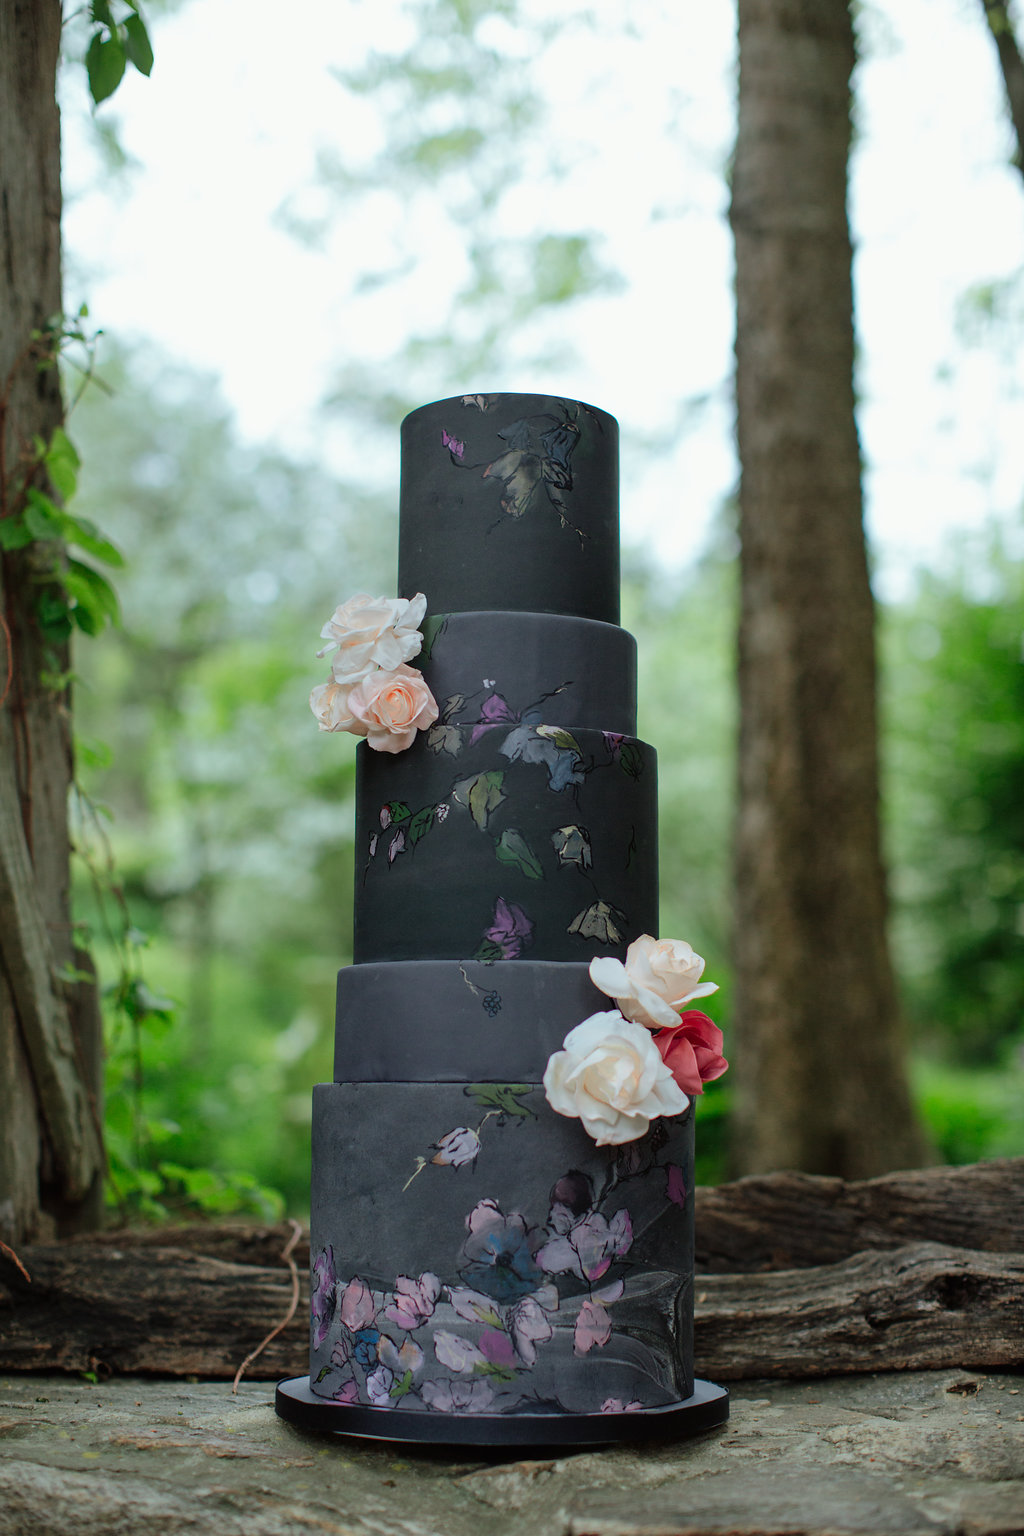 Black wedding cake with blush hand painted flowers